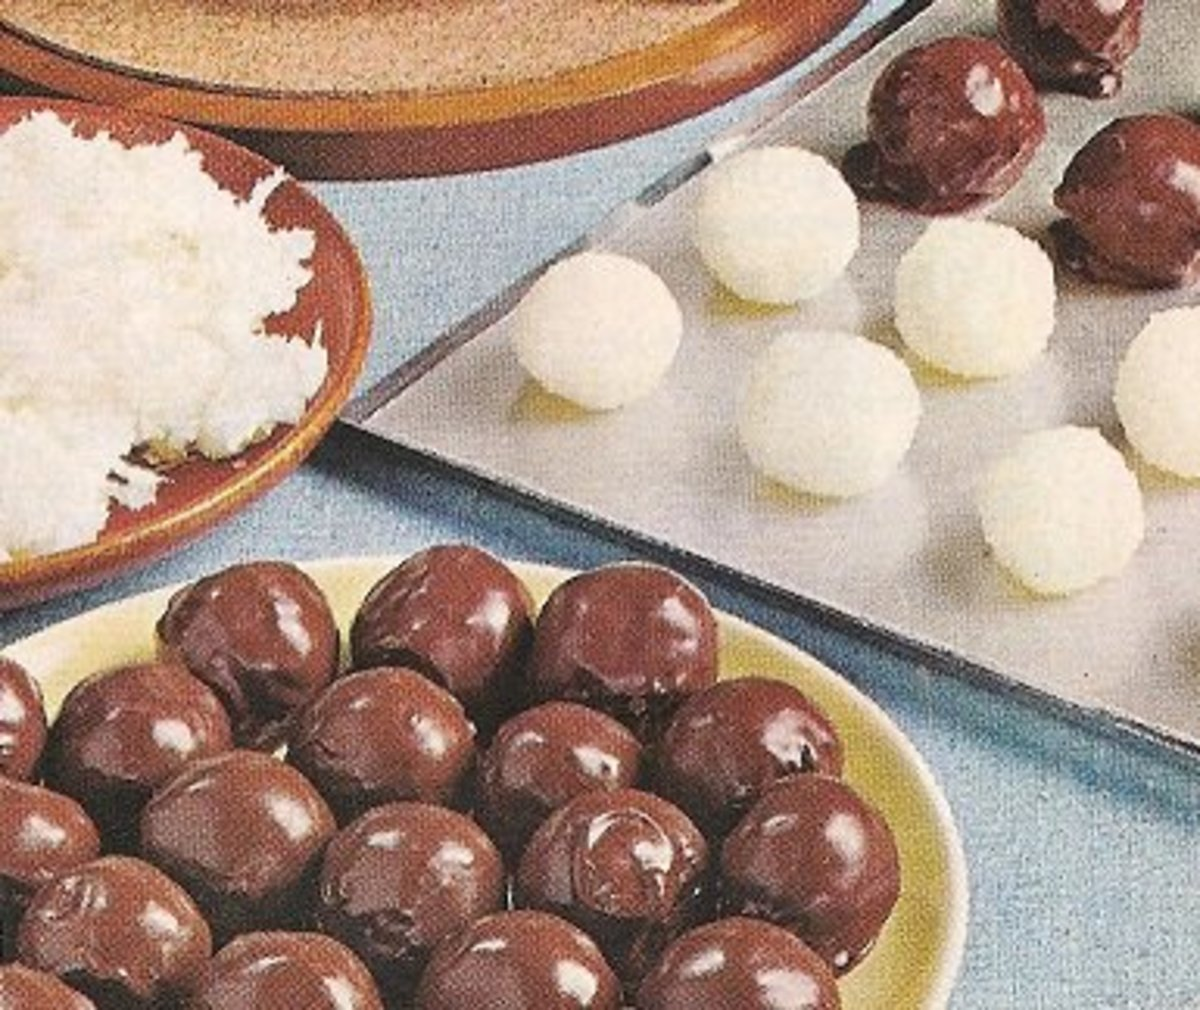 easy-no-cook-christmas-candies